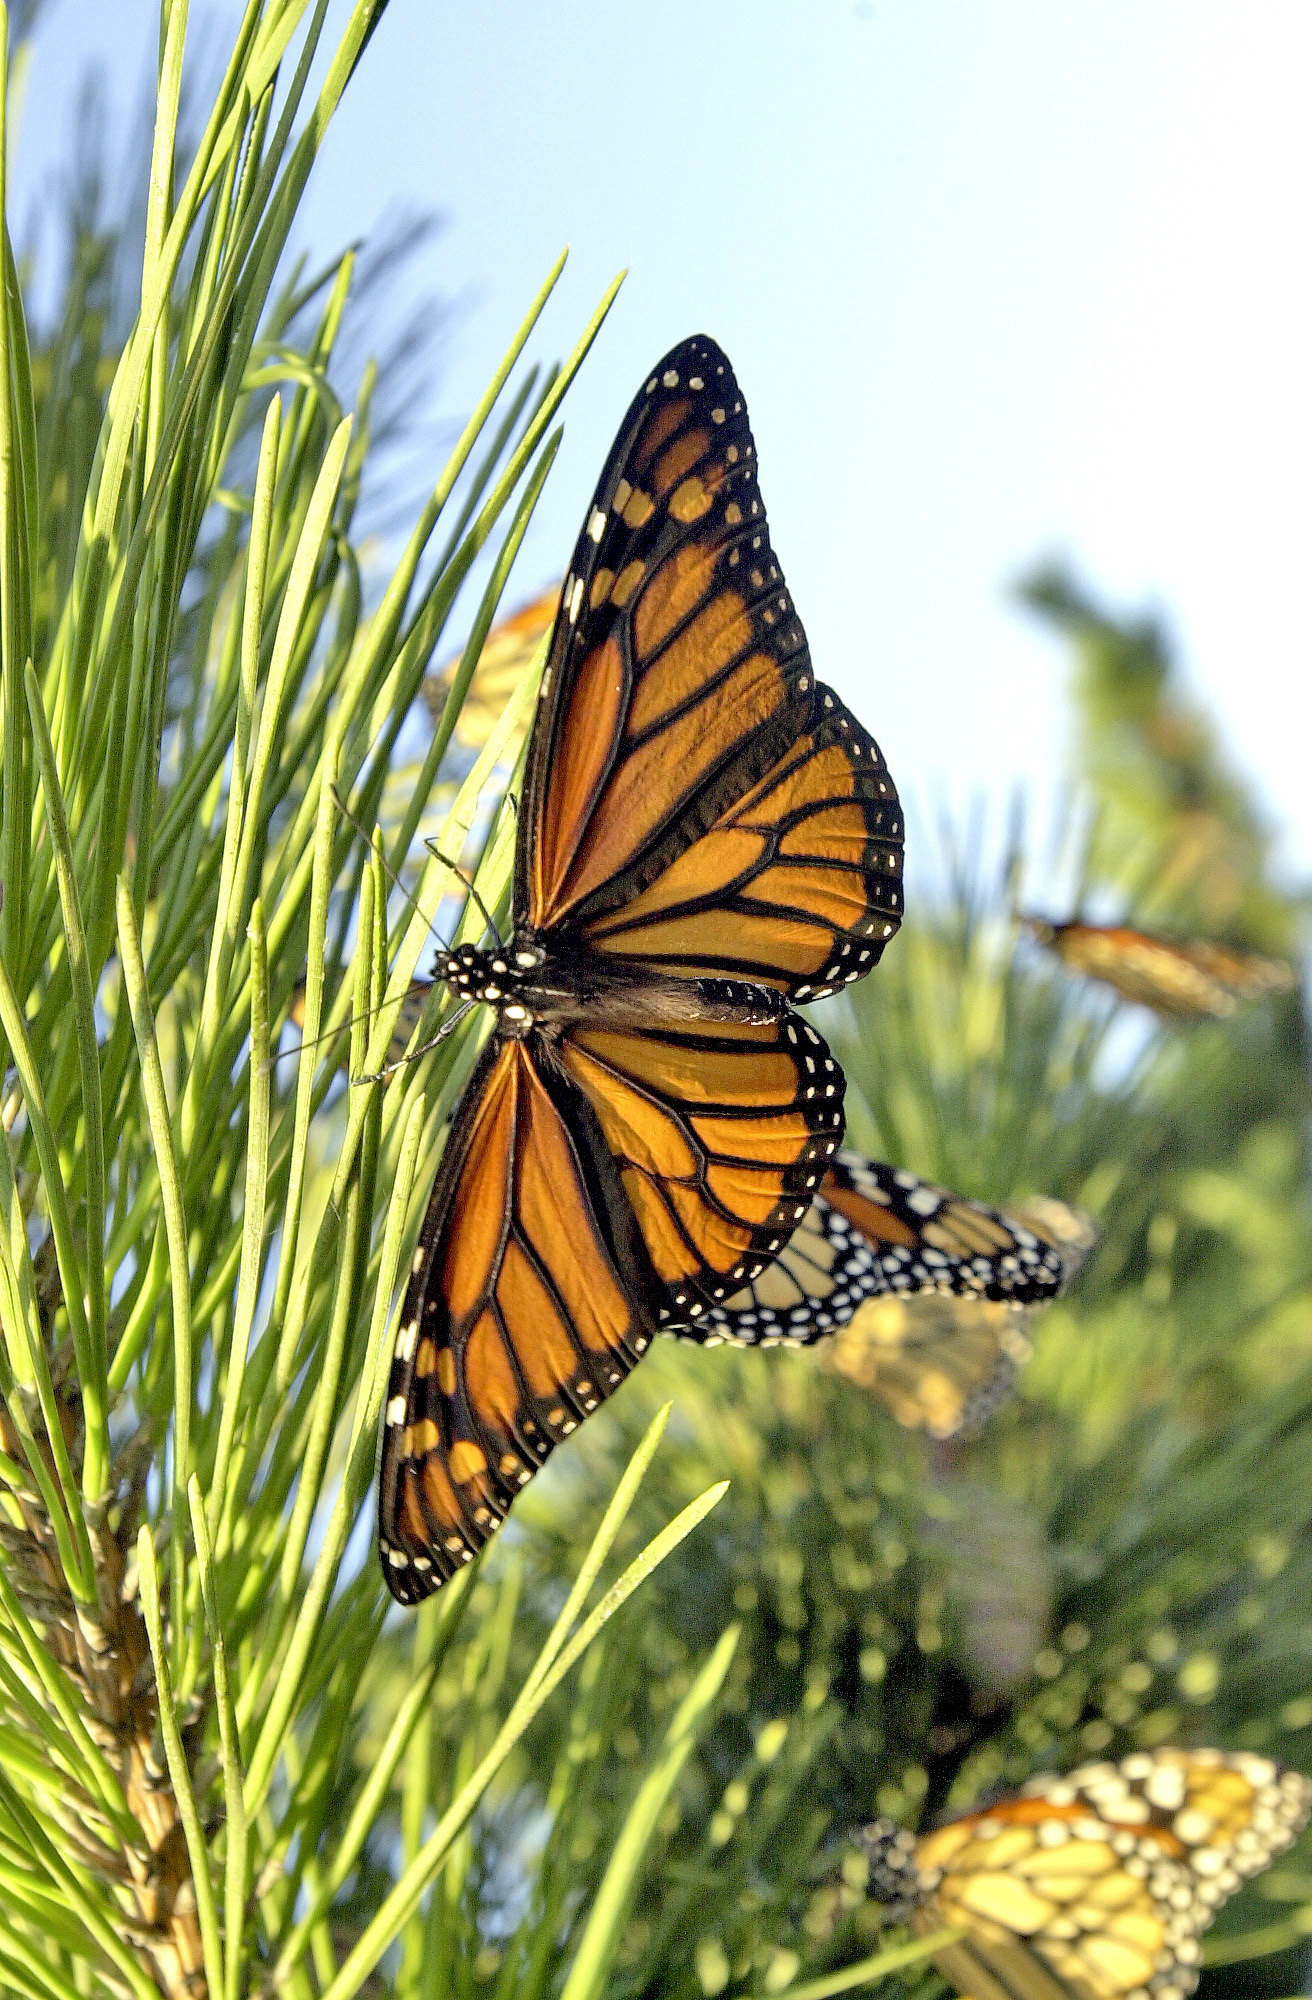 The results of a recent study published this year cast some doubts and notes of caution on the practice of raising monarchs in captivity for later release into the wild.